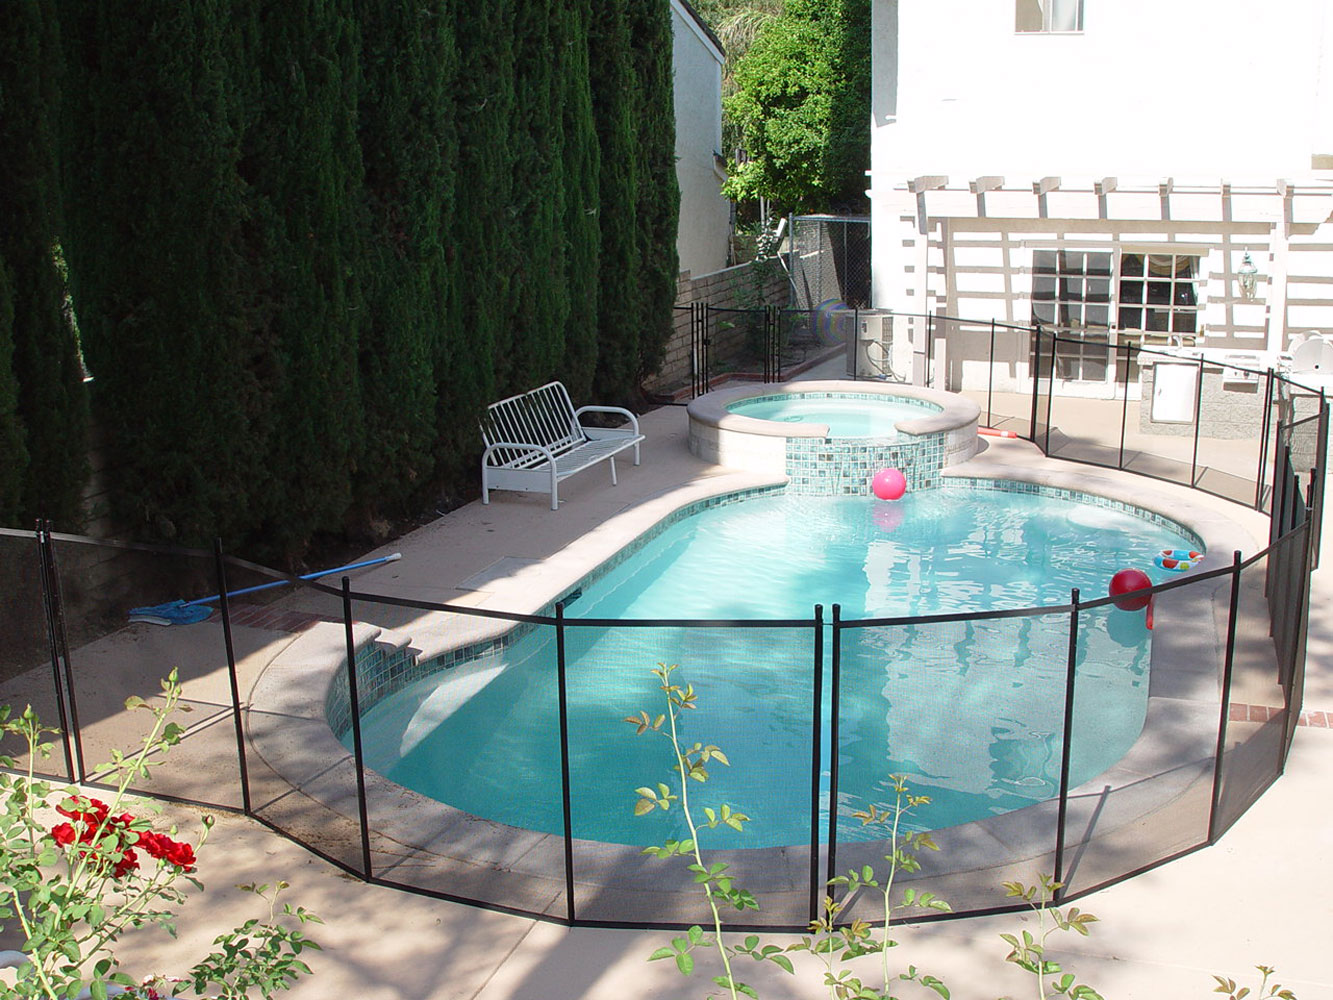 Secure Your Pool At Night